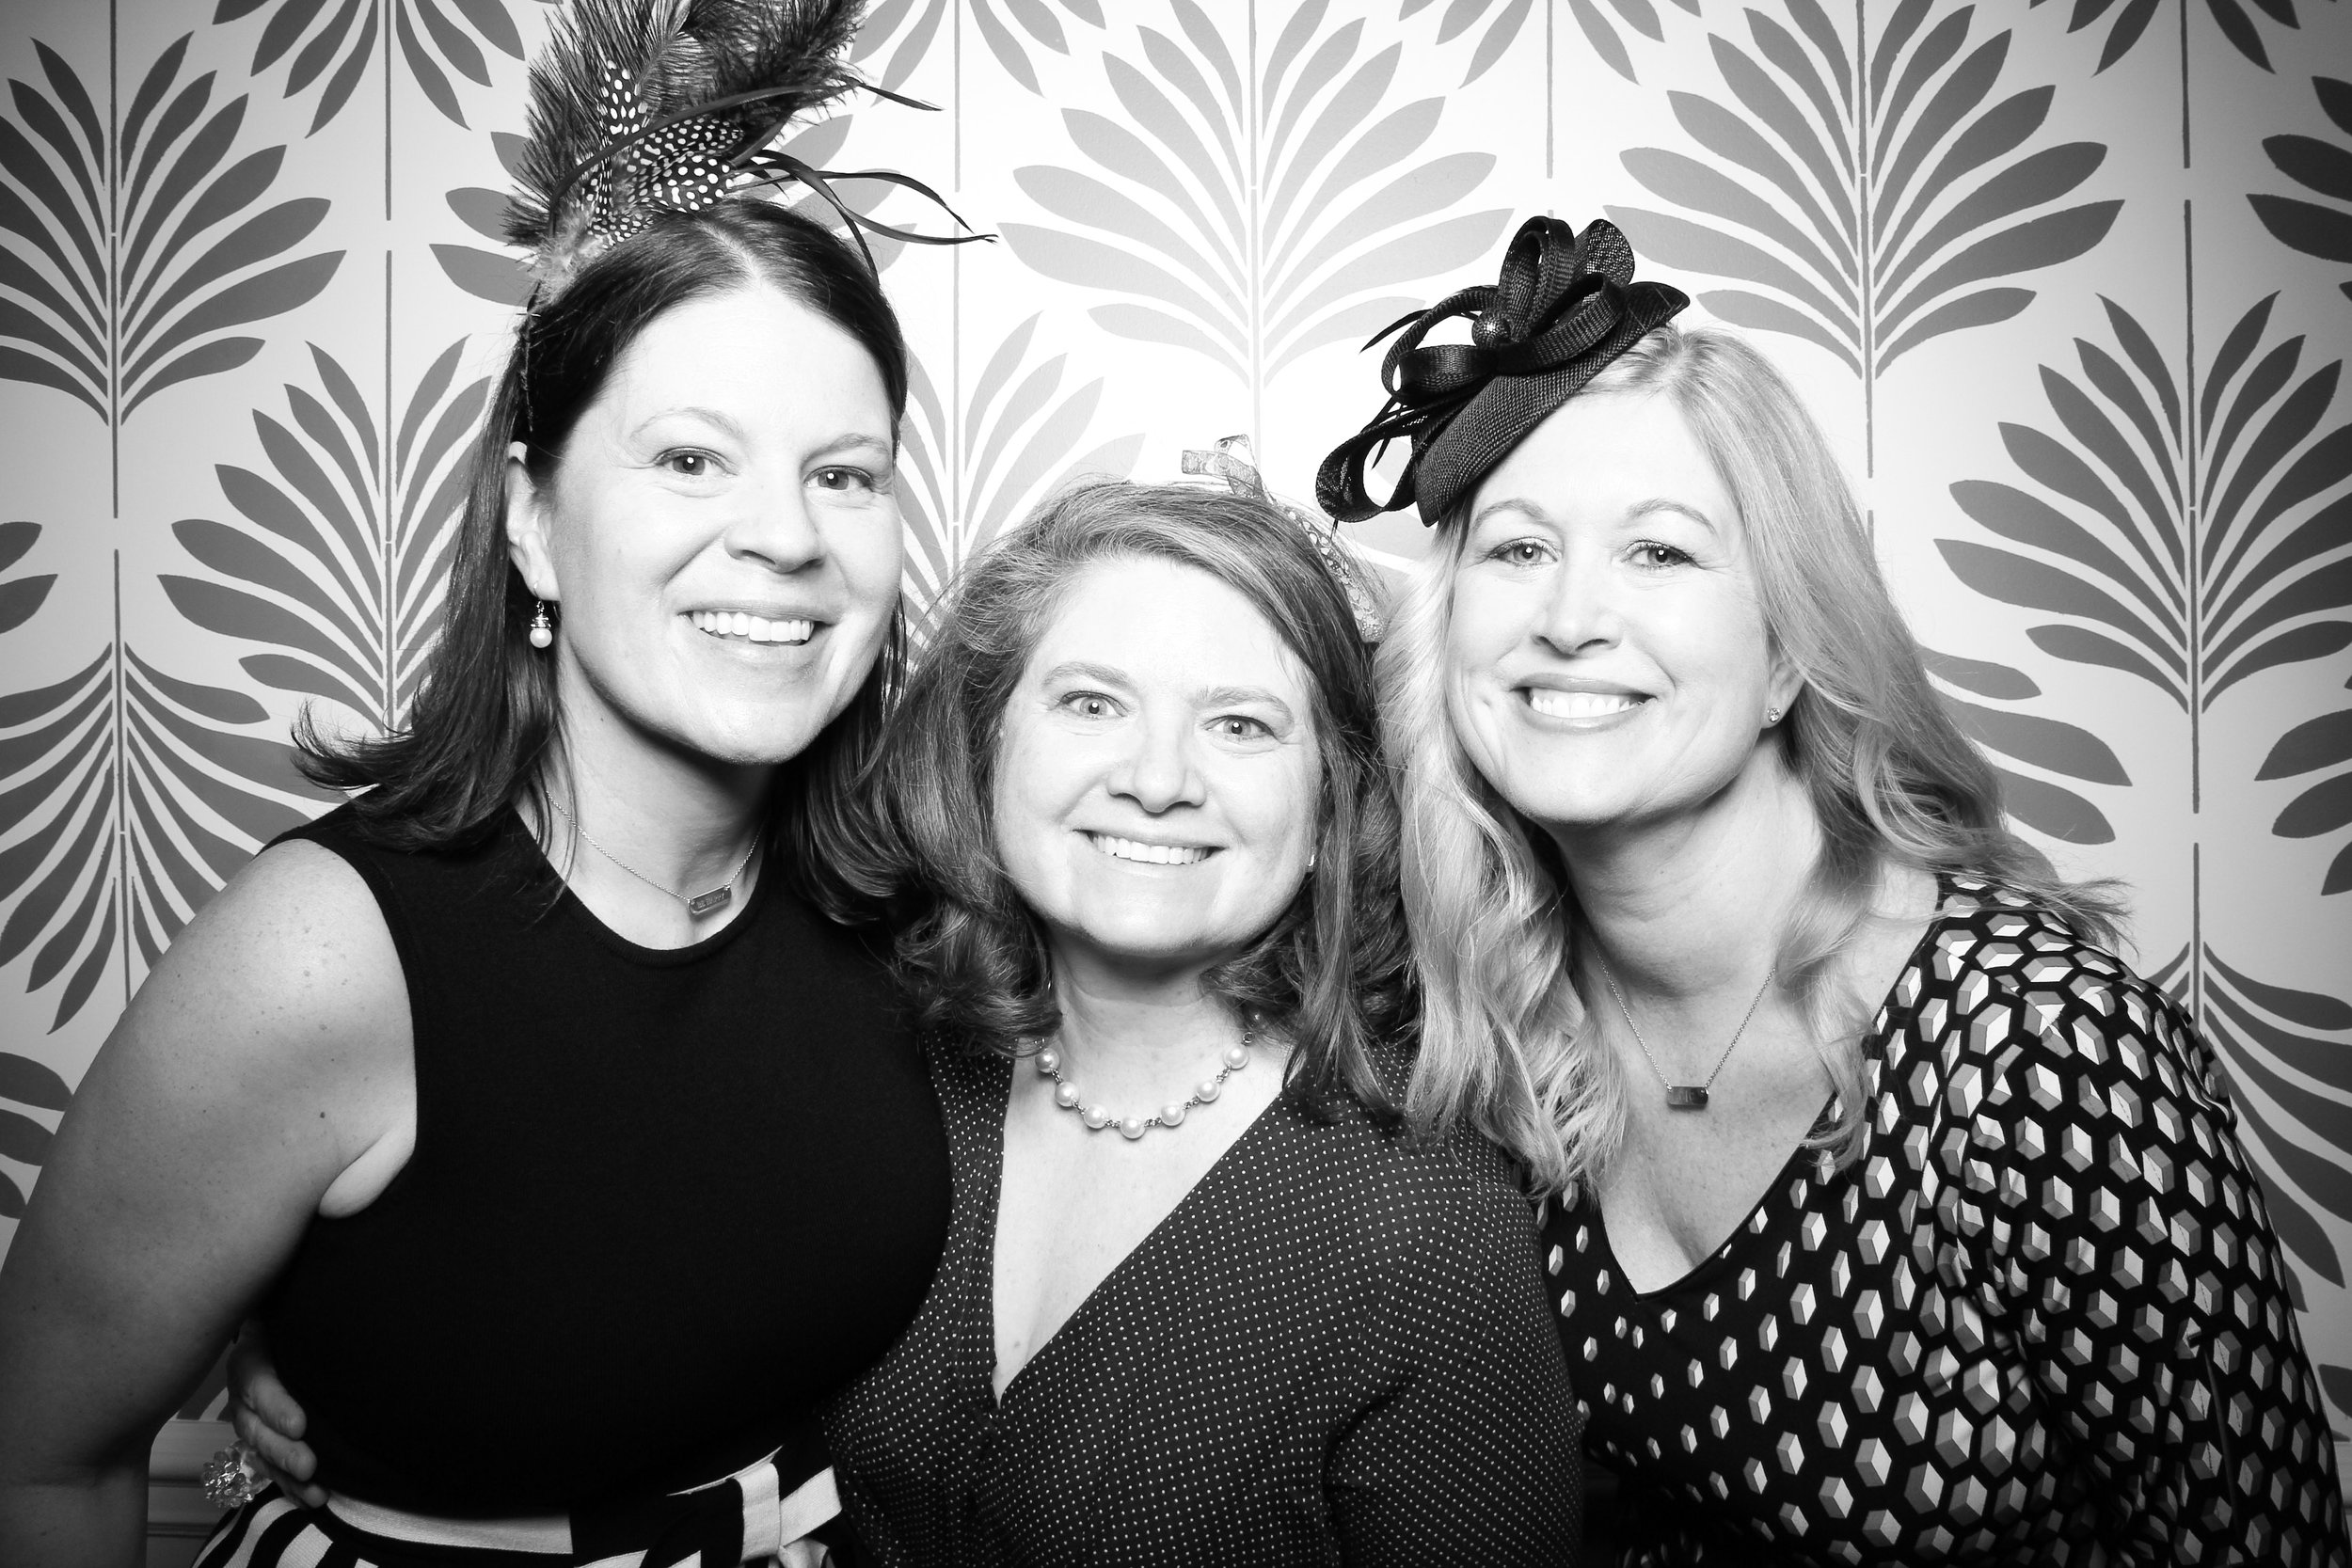 LaGrange_Country_Club_Photo_Booth_Wedding_Reception__10.jpg